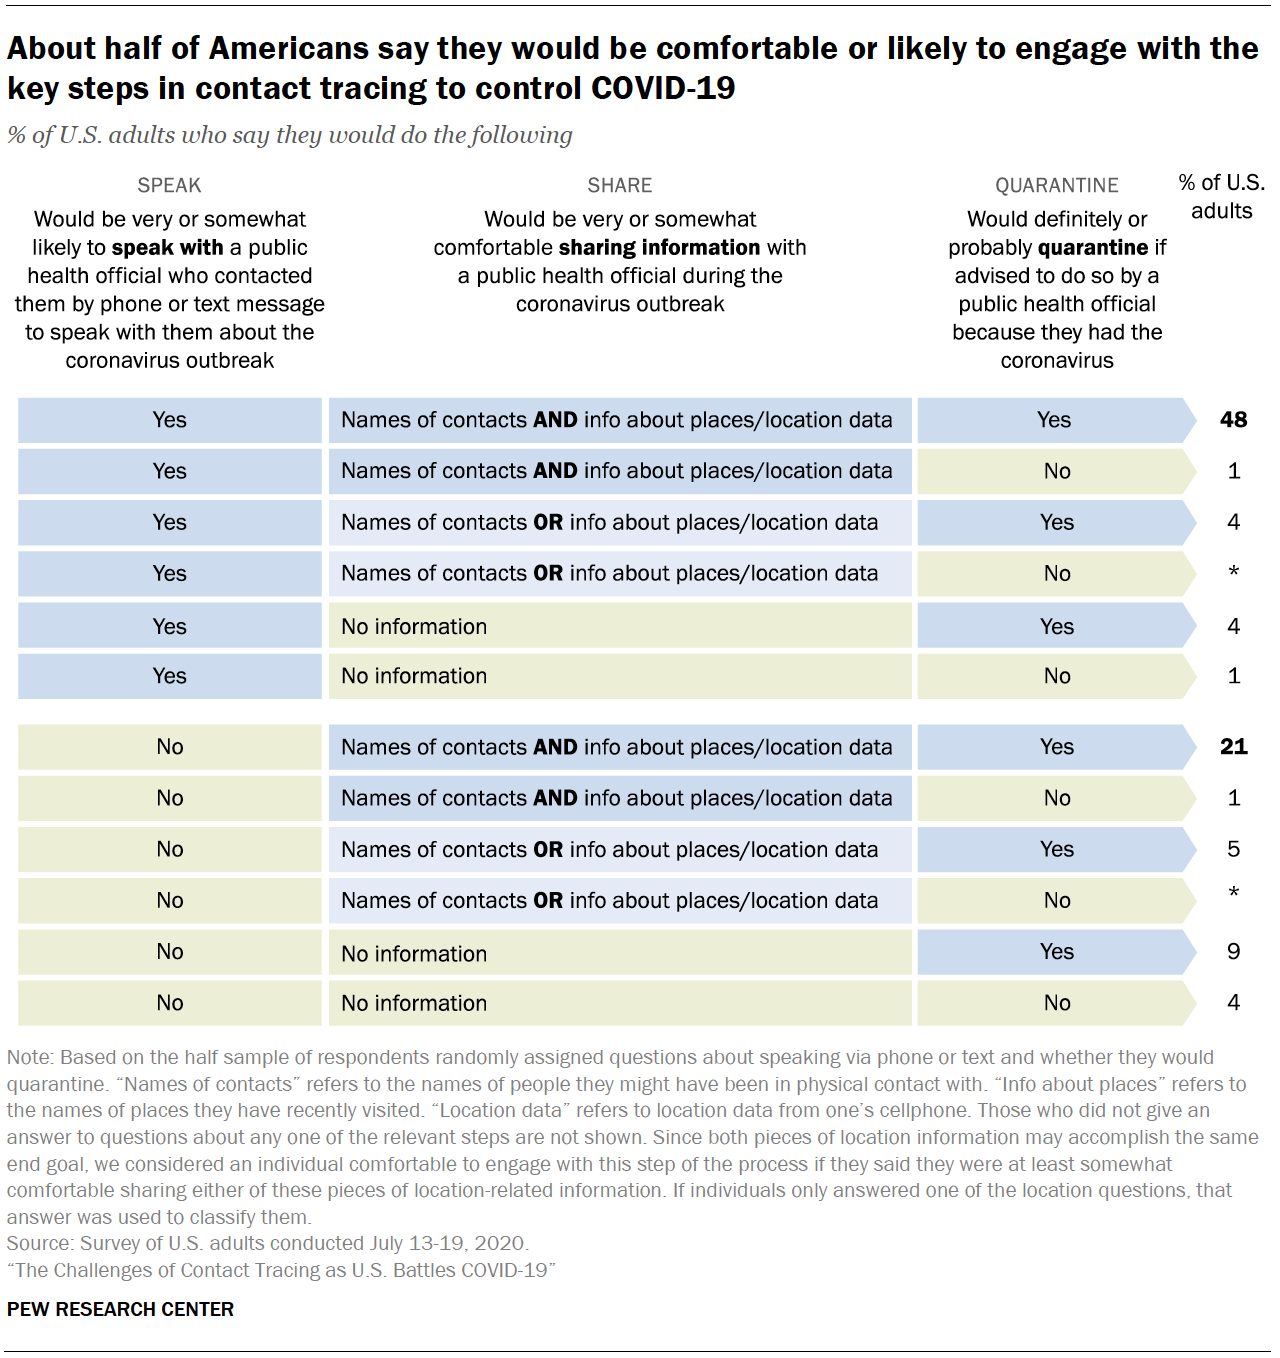 Chart shows about half of Americans say they would be comfortable or likely to engage with the key steps in contact tracing to control COVID-19